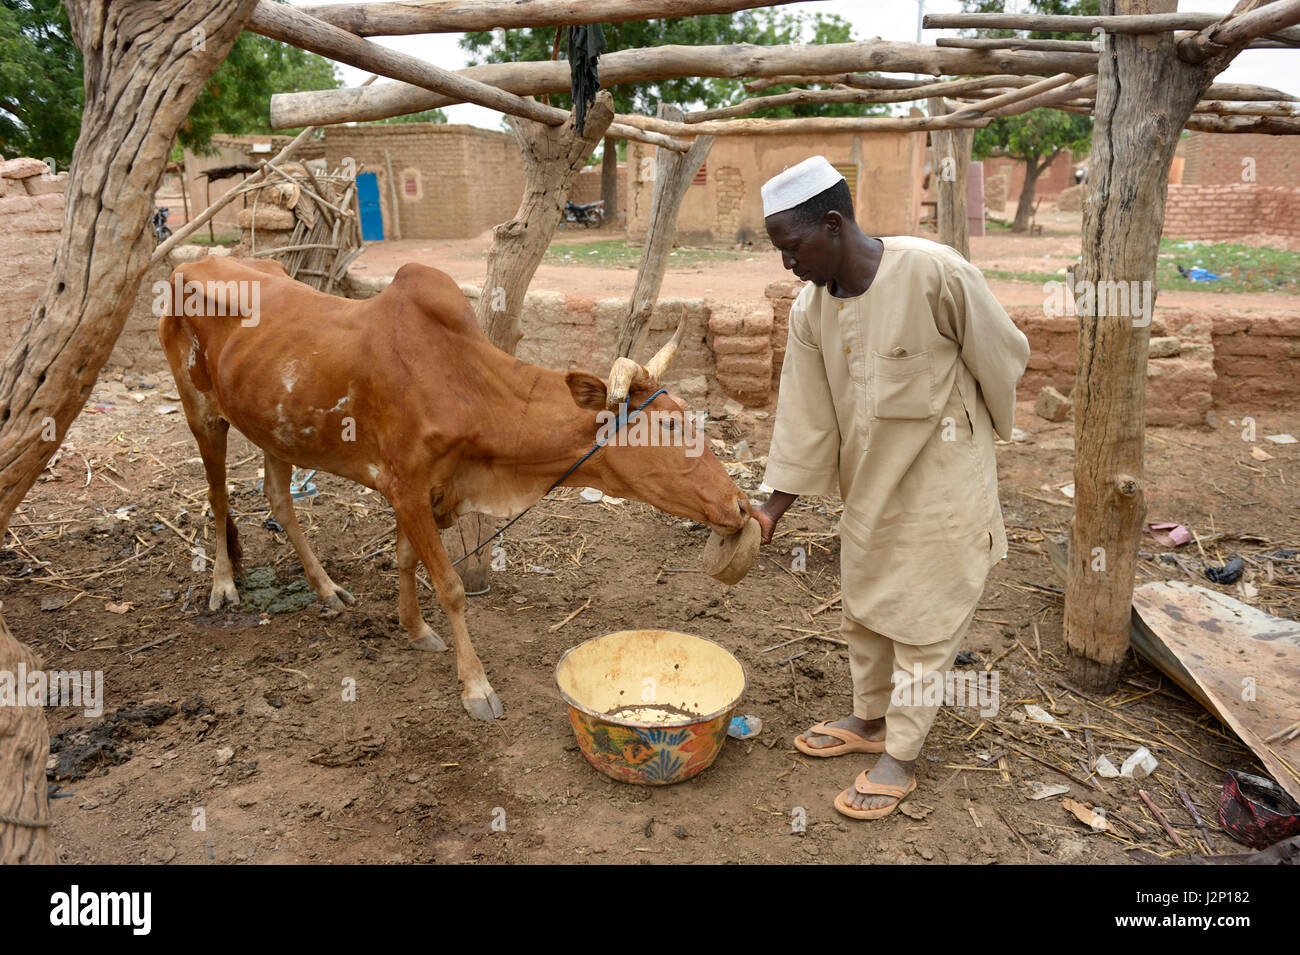 Farmer letting beef lick on a stone with minerals and salt, Toeghin village, Oubritenga province, Plateau Central - Stock Image